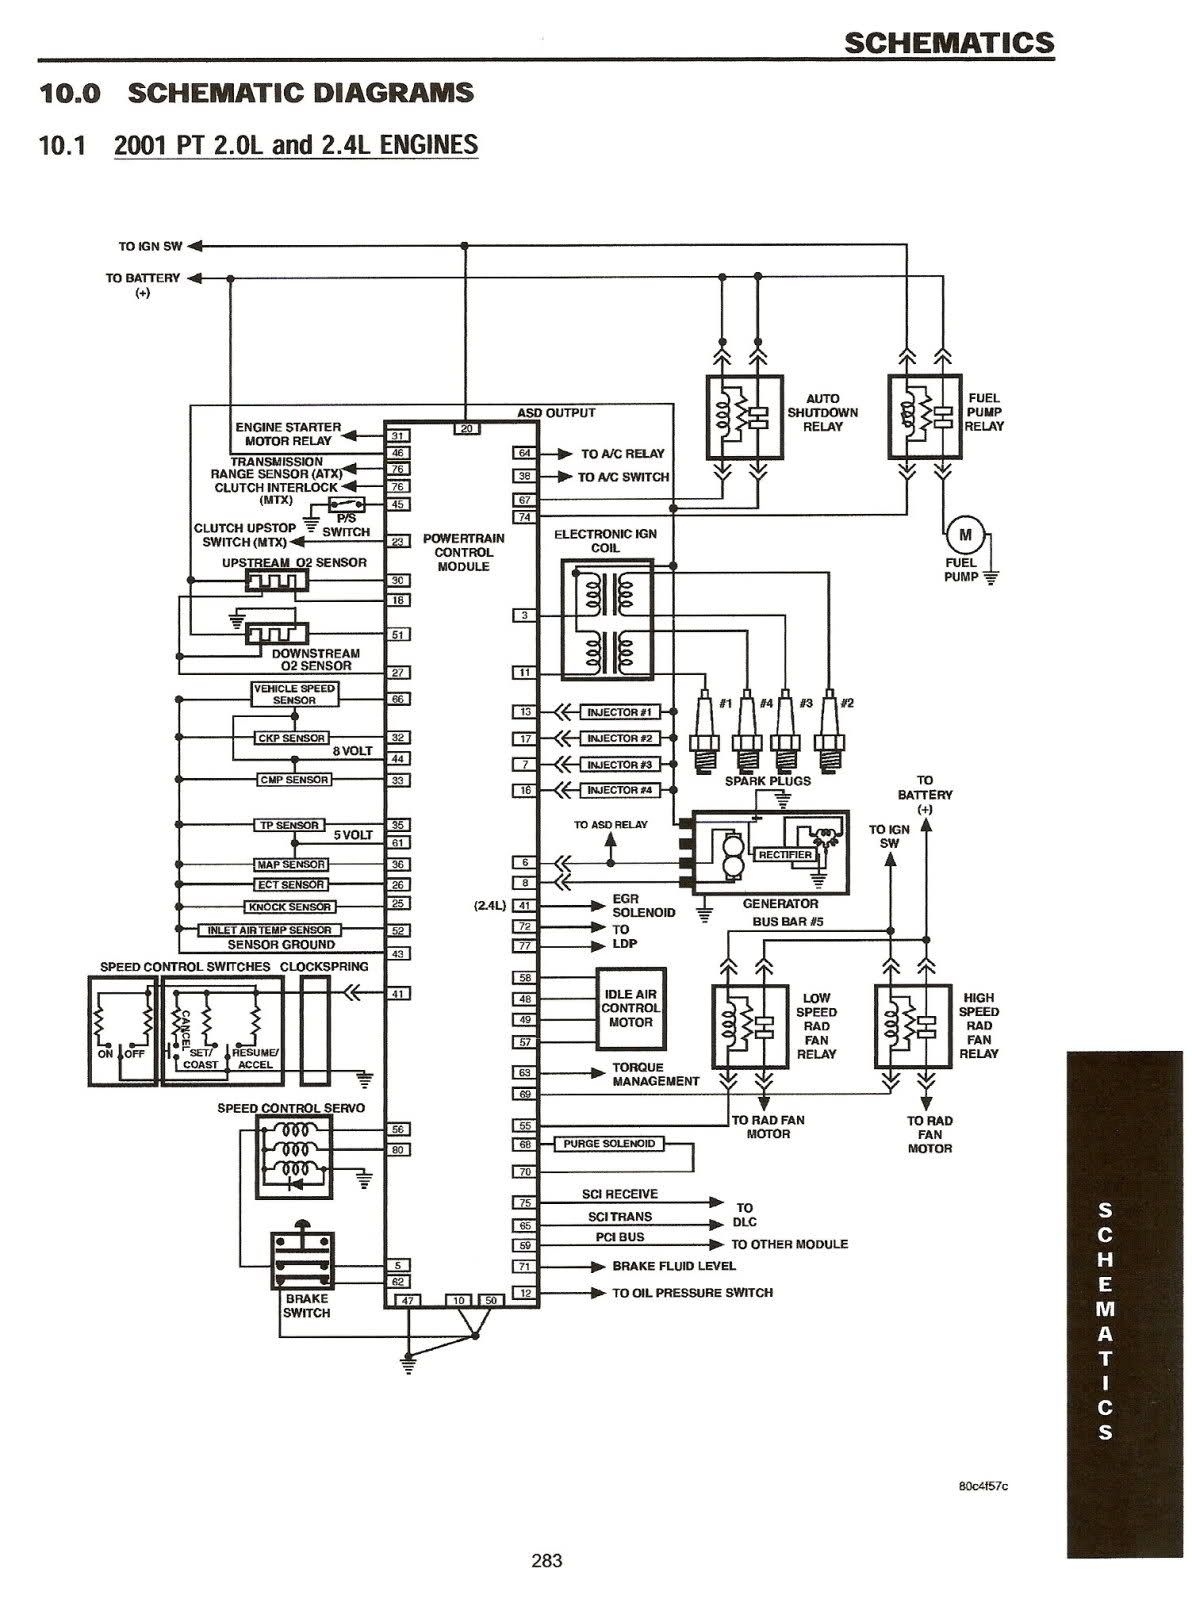 2001 pt cruiser wiring diagram | free wiring diagram 2007 pt cruiser starter wiring diagram